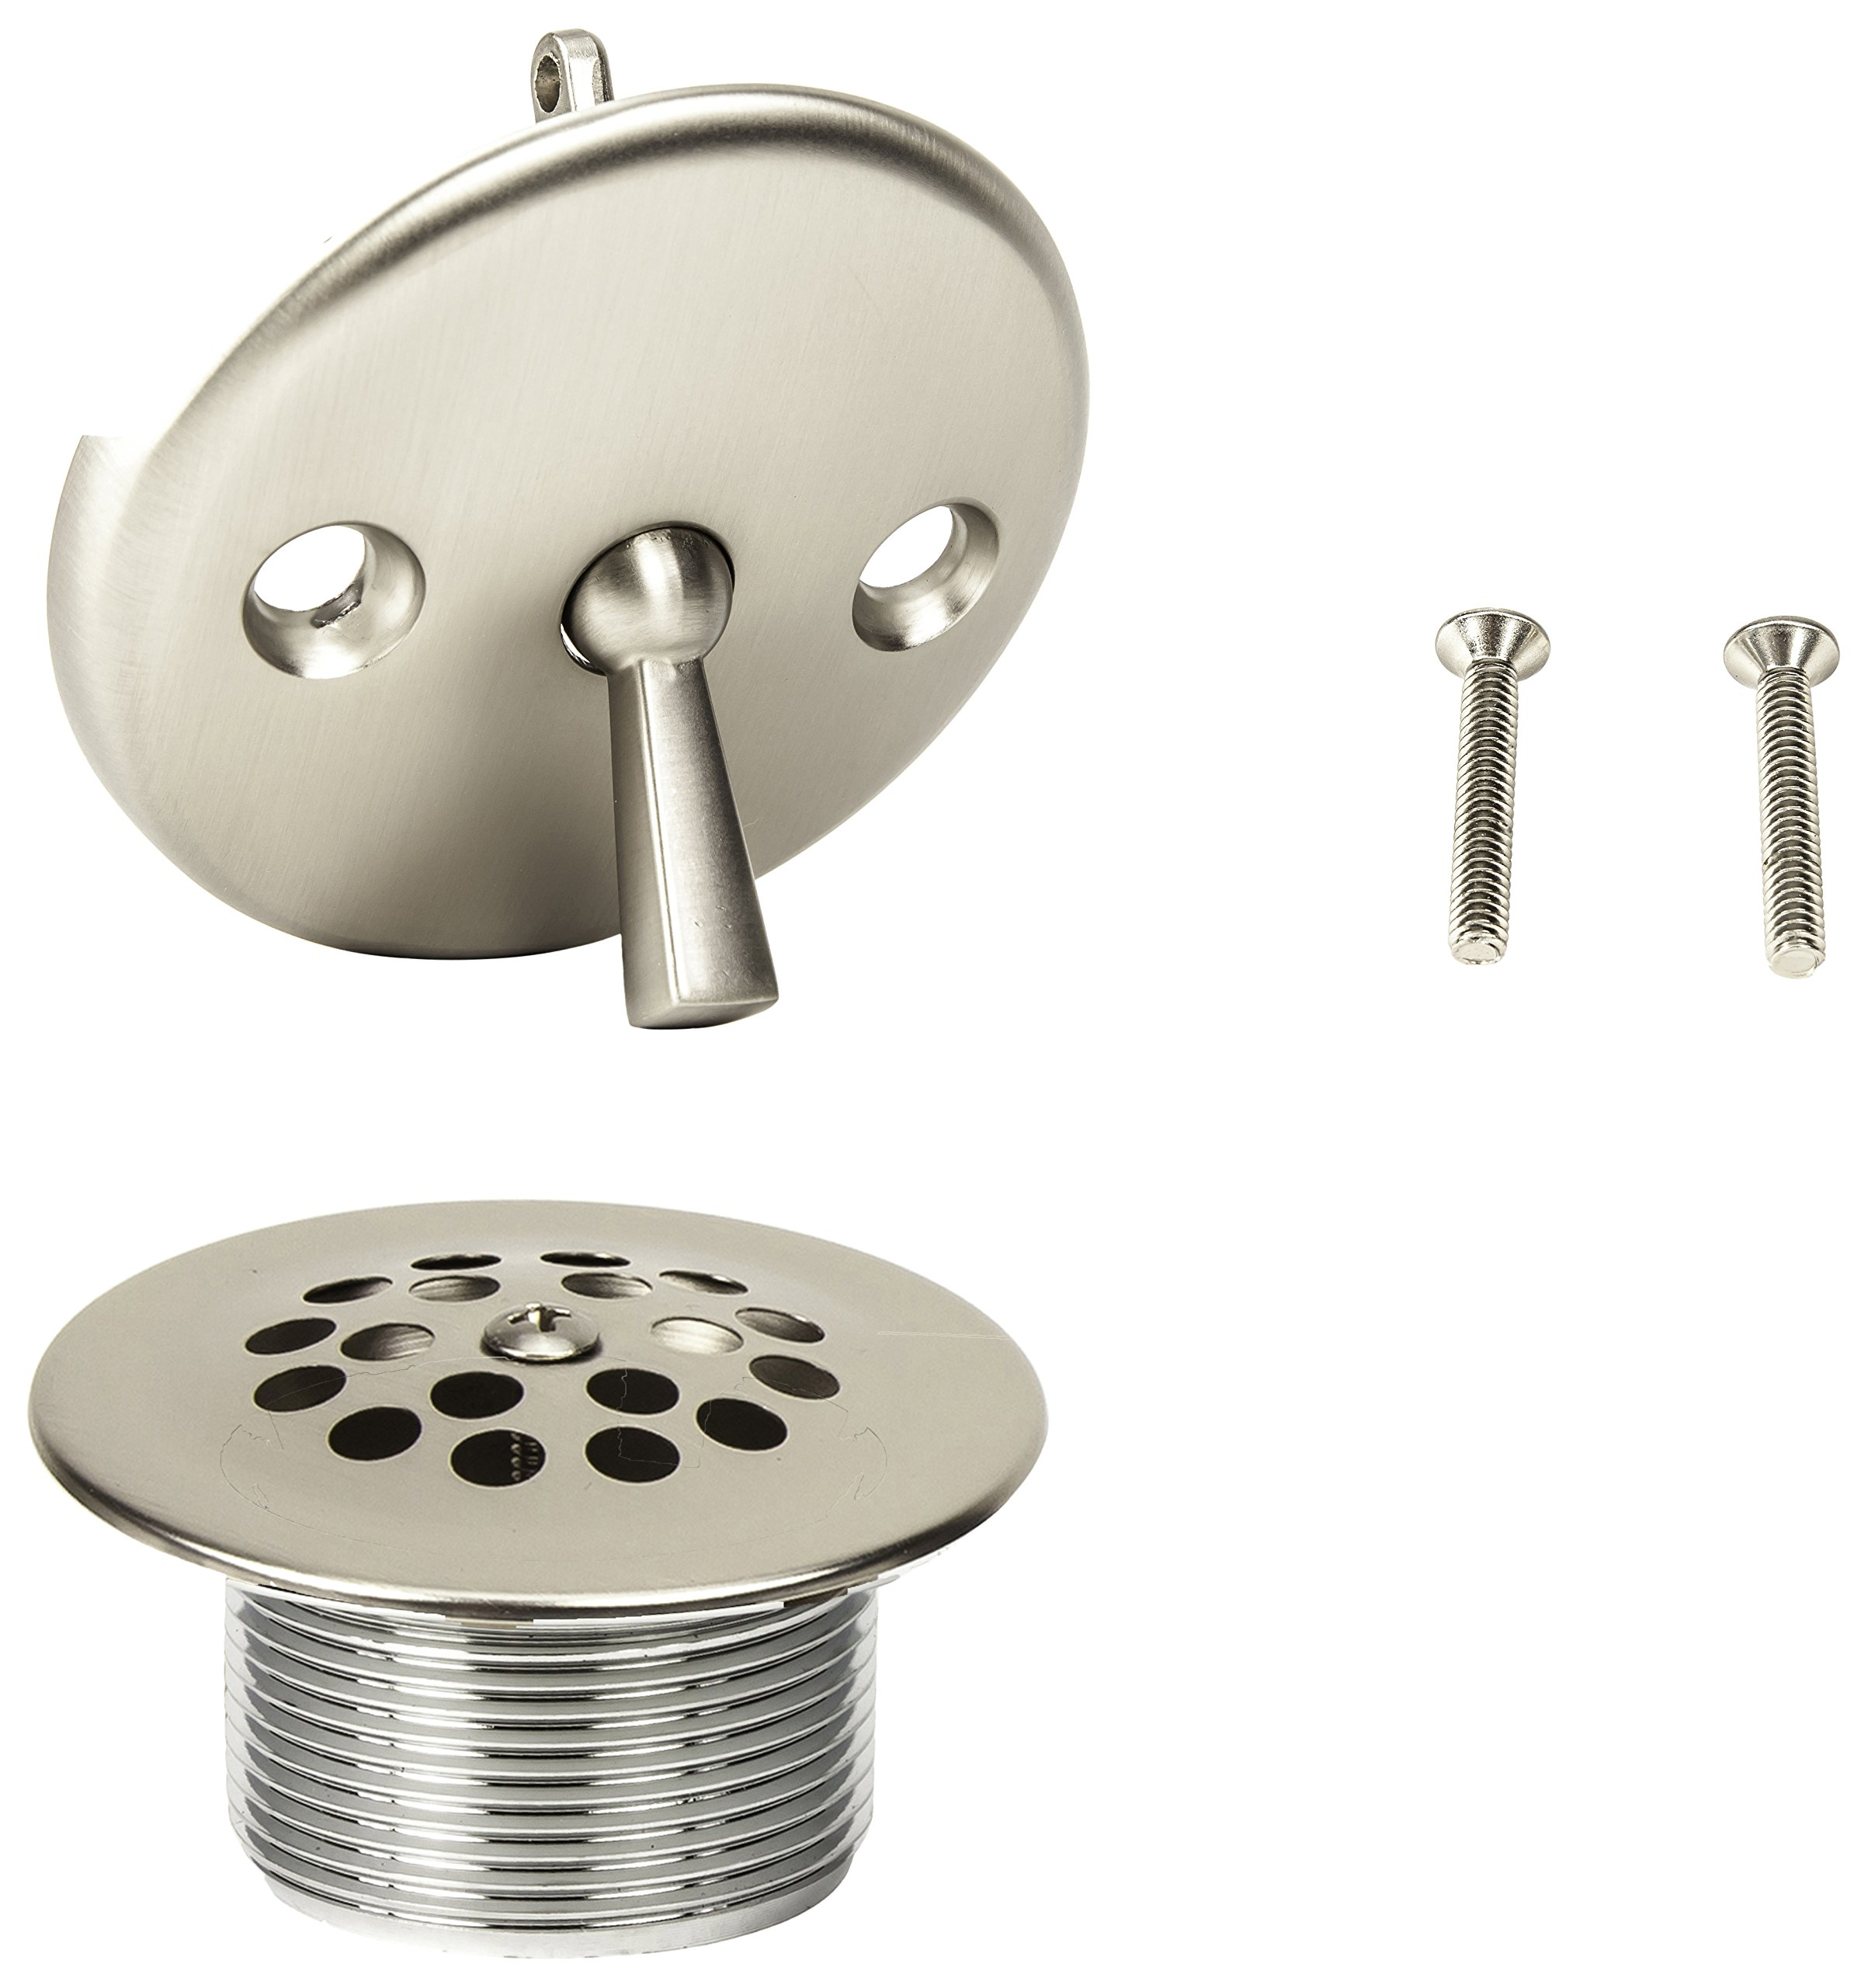 PF WaterWorks PF0972-BN Bathtub Drain Assembly (Drainshoe, Traditional Strainer & Trip Lever Waste & Overflow Face Plate), Brush Nickel